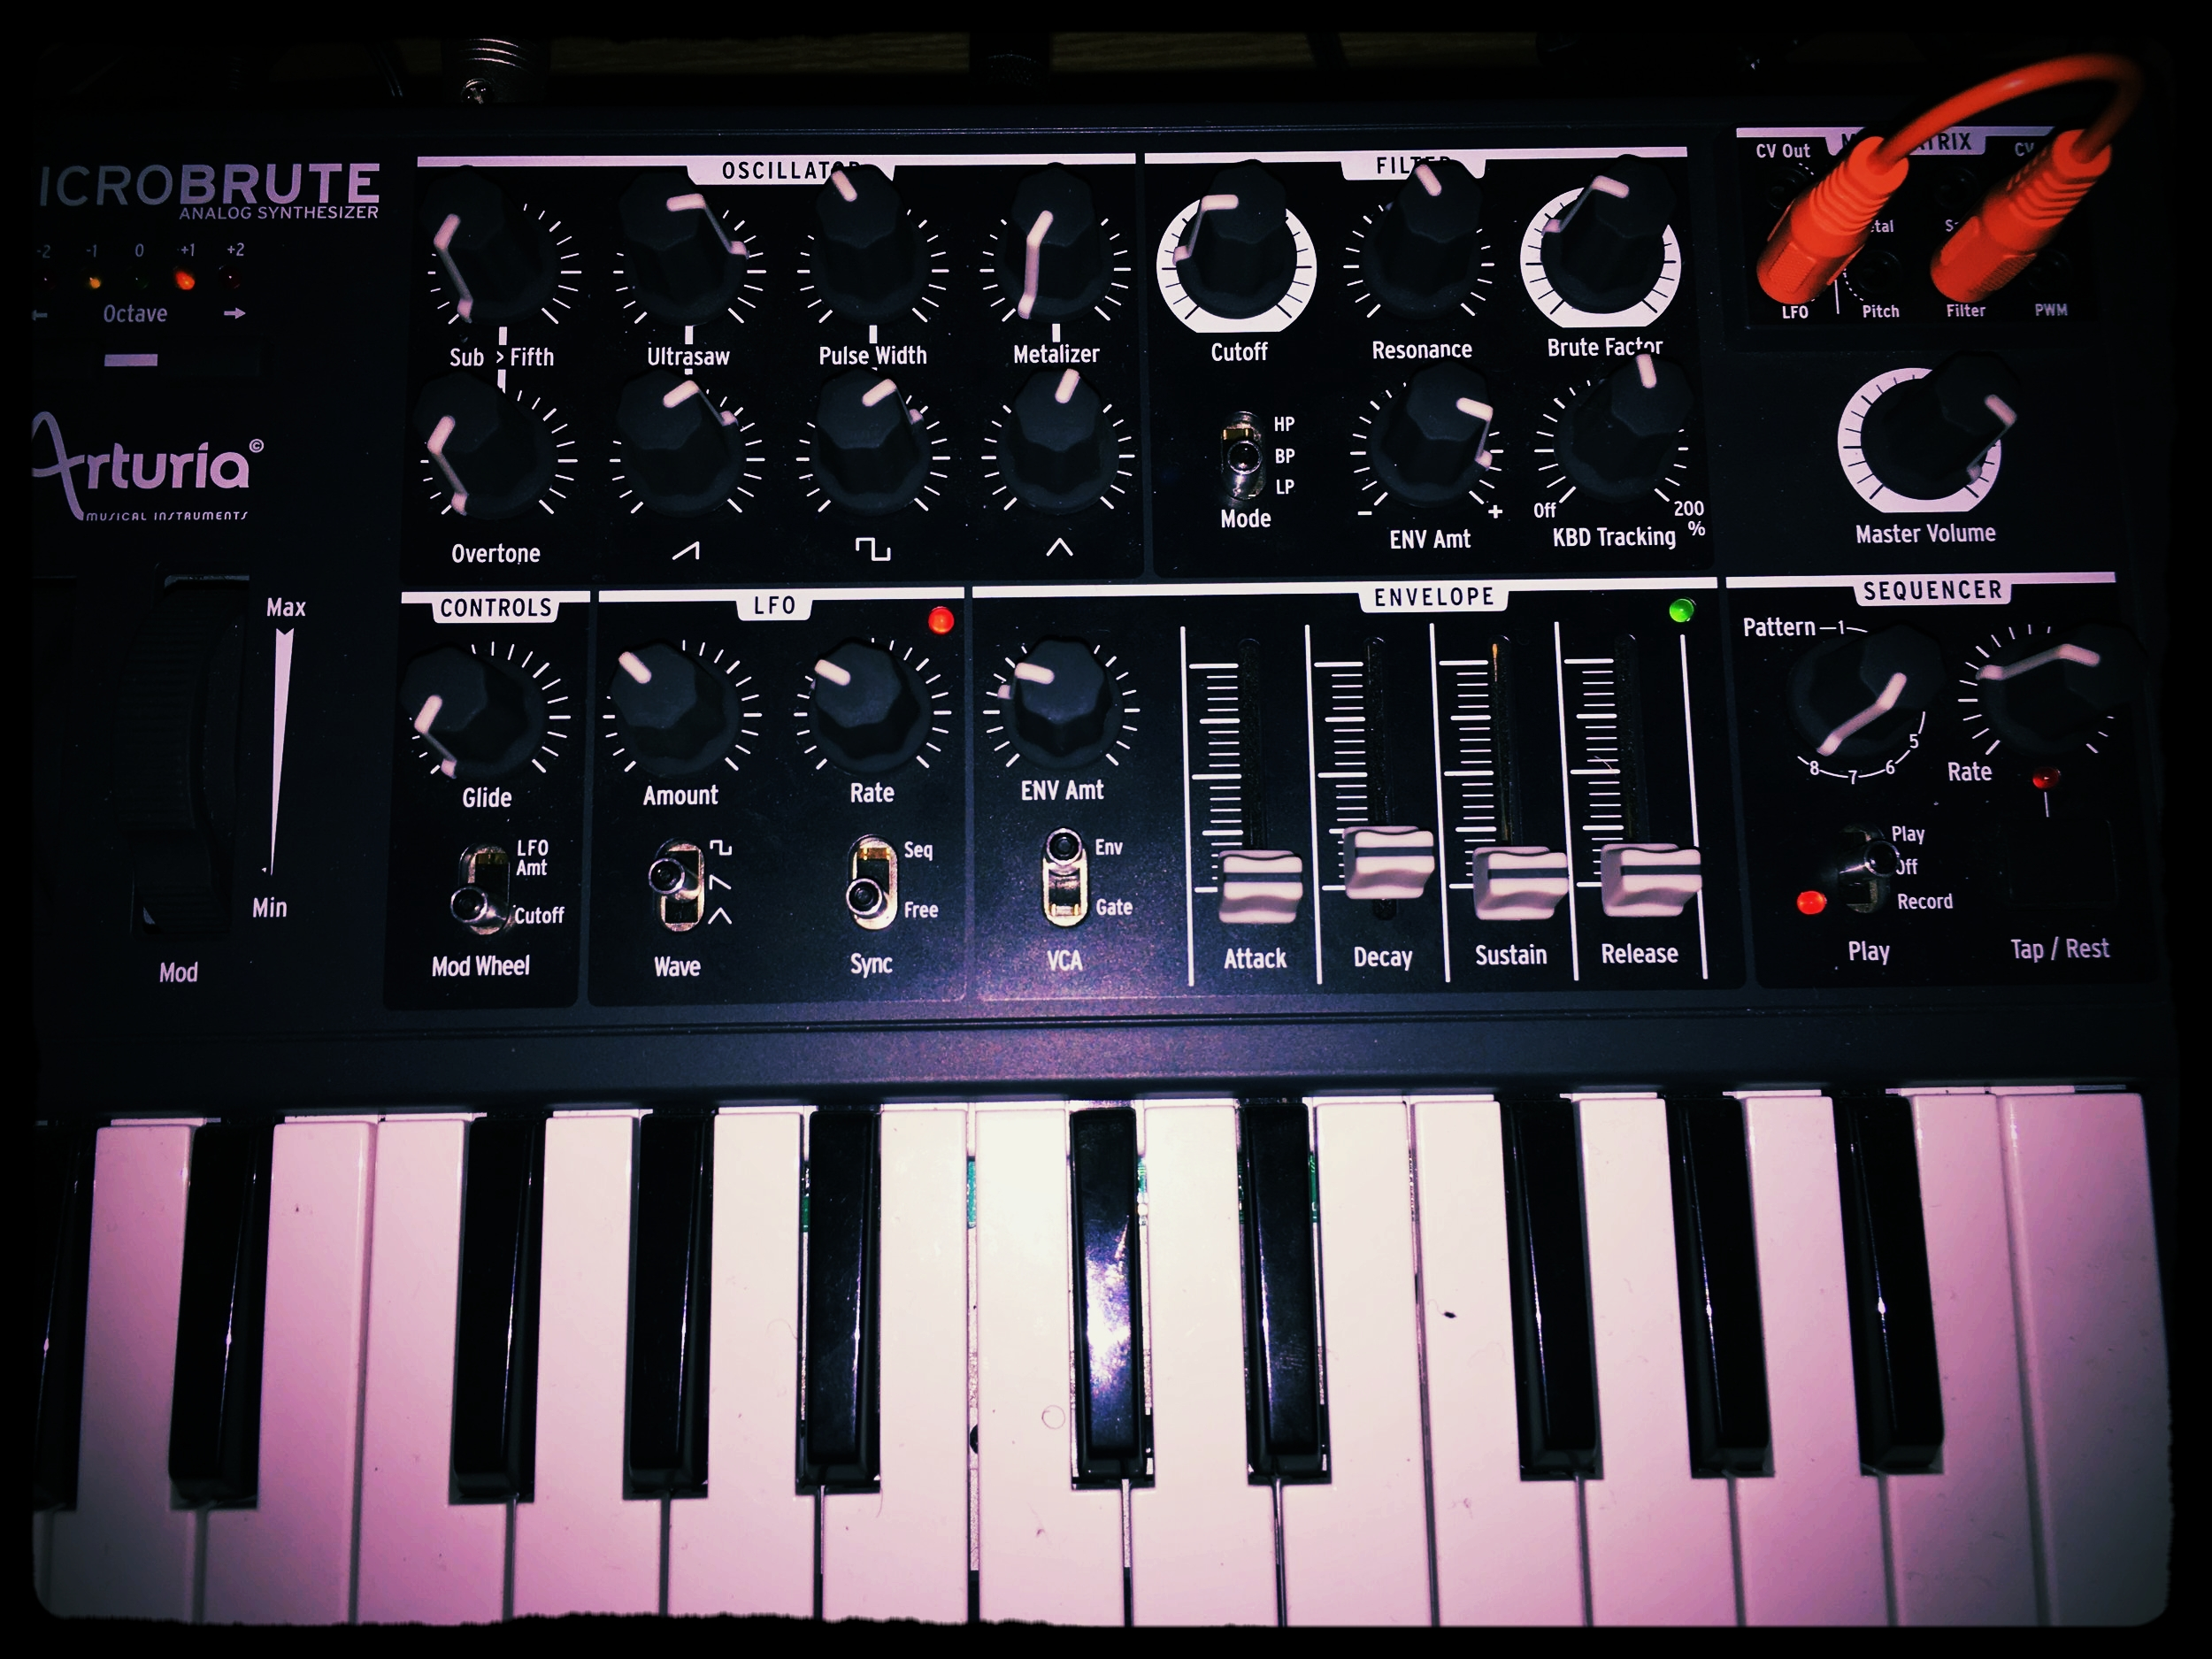 Arturia MicroBrute - This tiny powerhouse of a synth increases the flexibility of my setup by adding a keyboard, another ocsillator,  additional modulation with the LFO, ADSR envelope, mod wheel, pitch bend and sequencer. The MicroBrute can be used to control the SkyLab or SkyLab can control the MicroBrute by MIDI or CV.